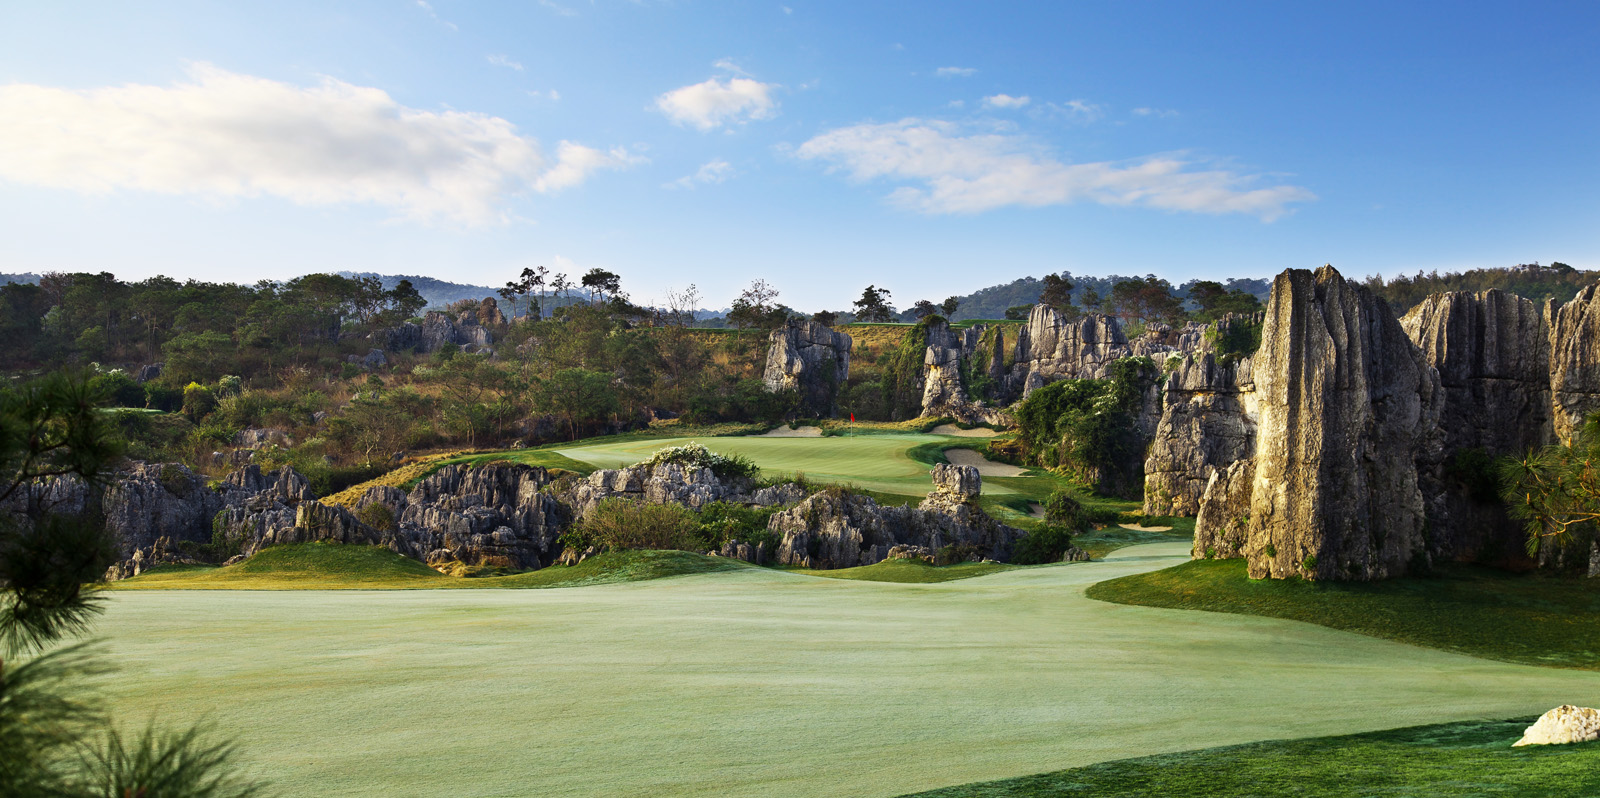 #11 at Stone Forest - Leader's Peak